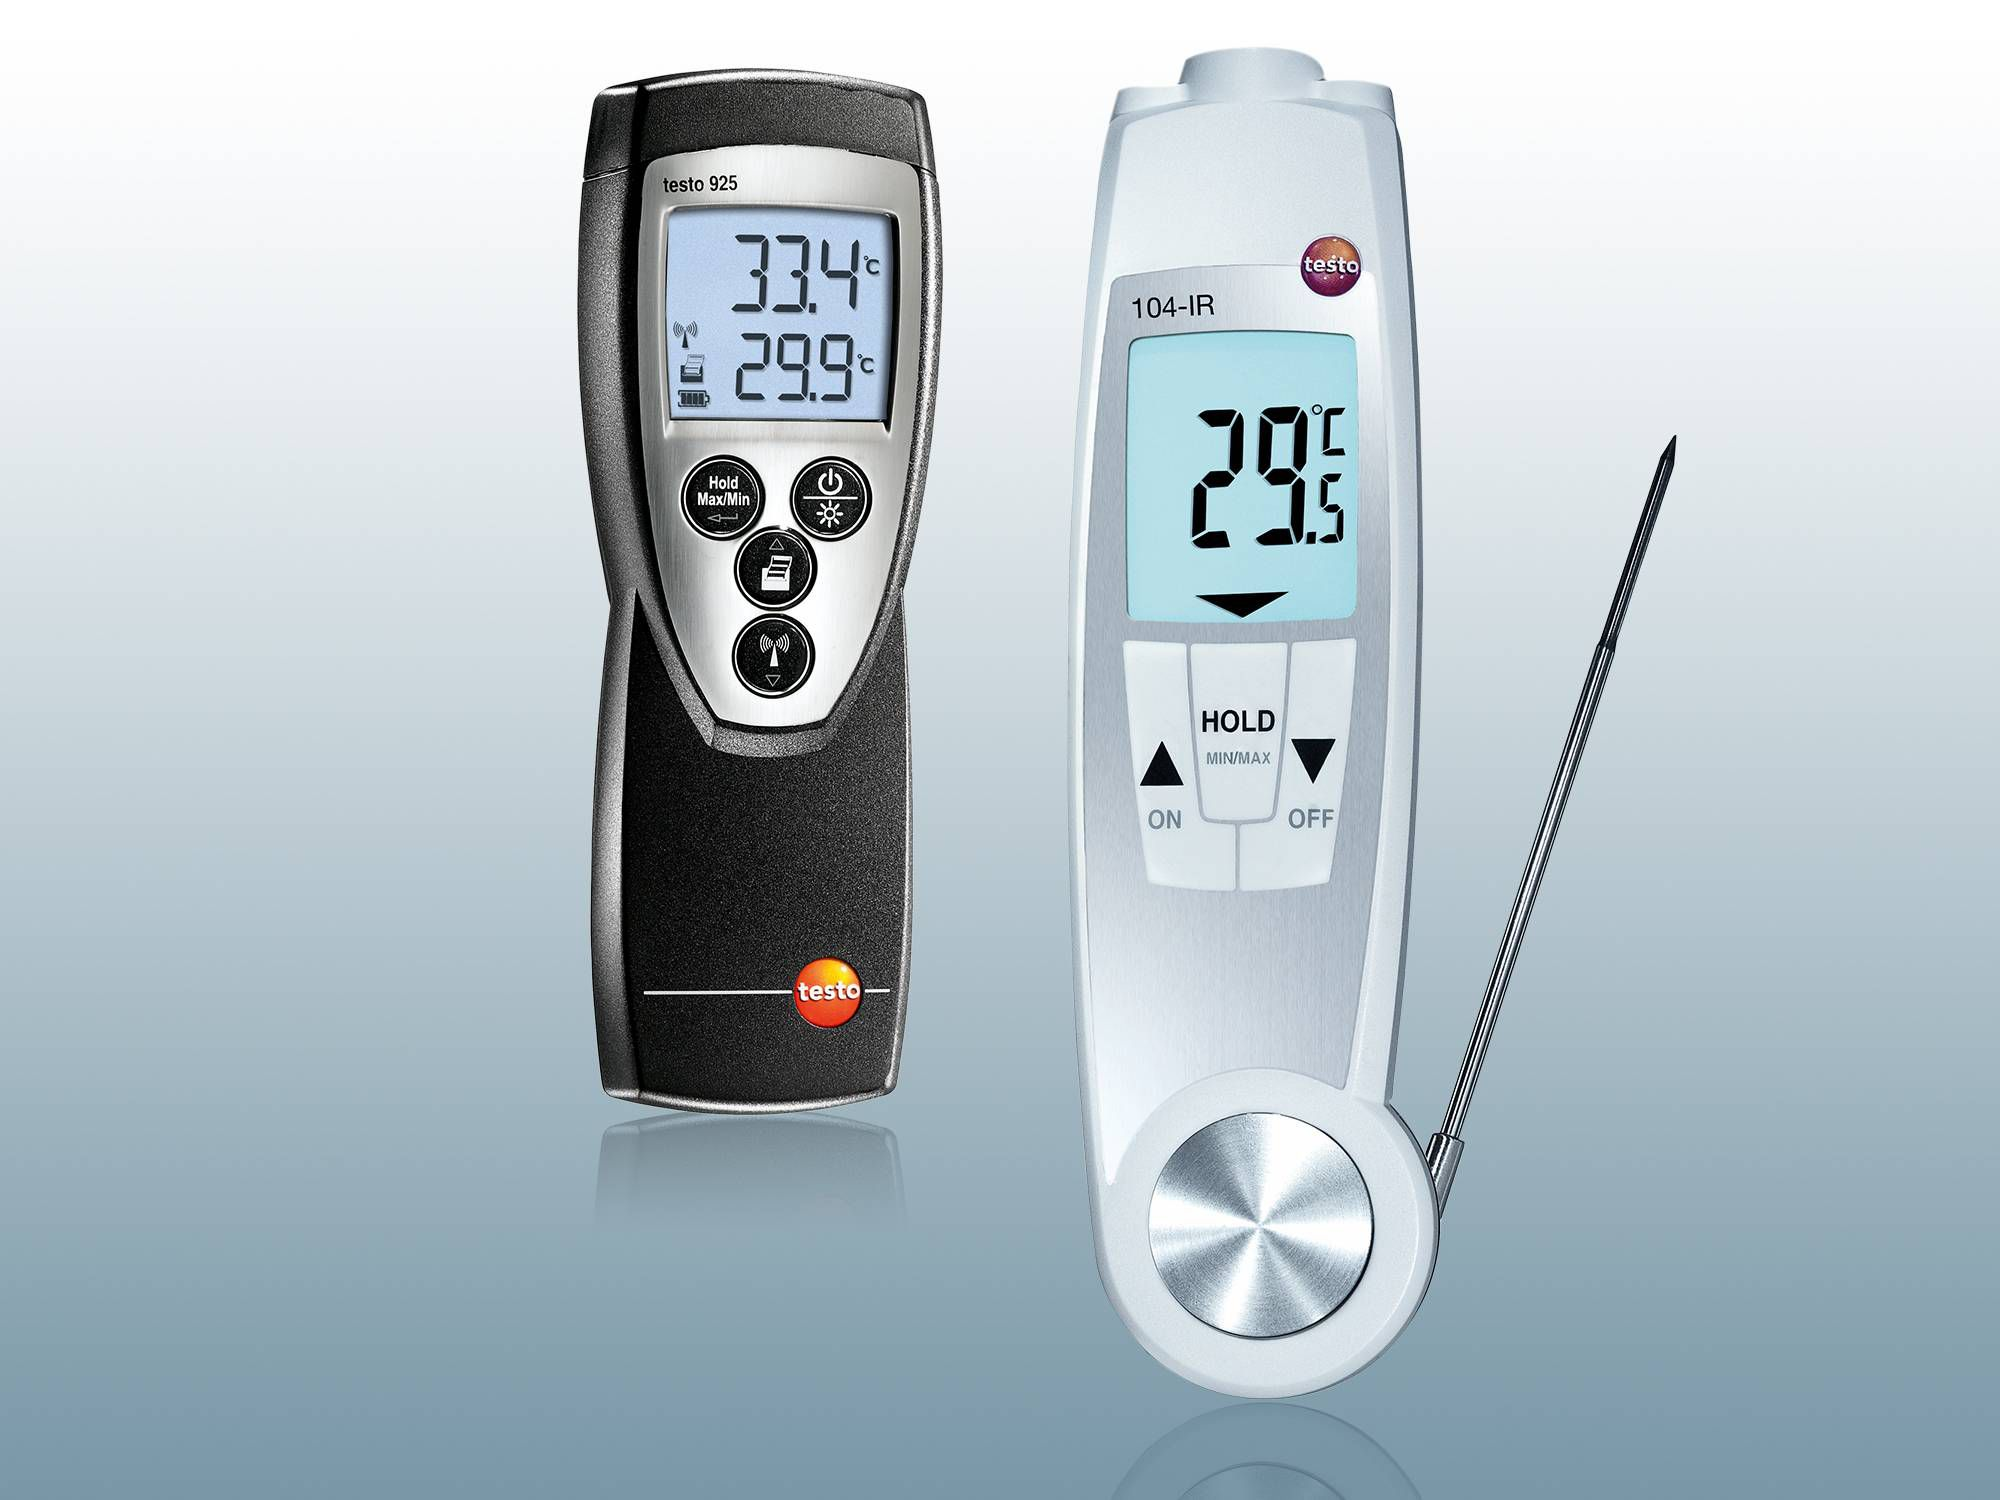 Testo measuring instruments